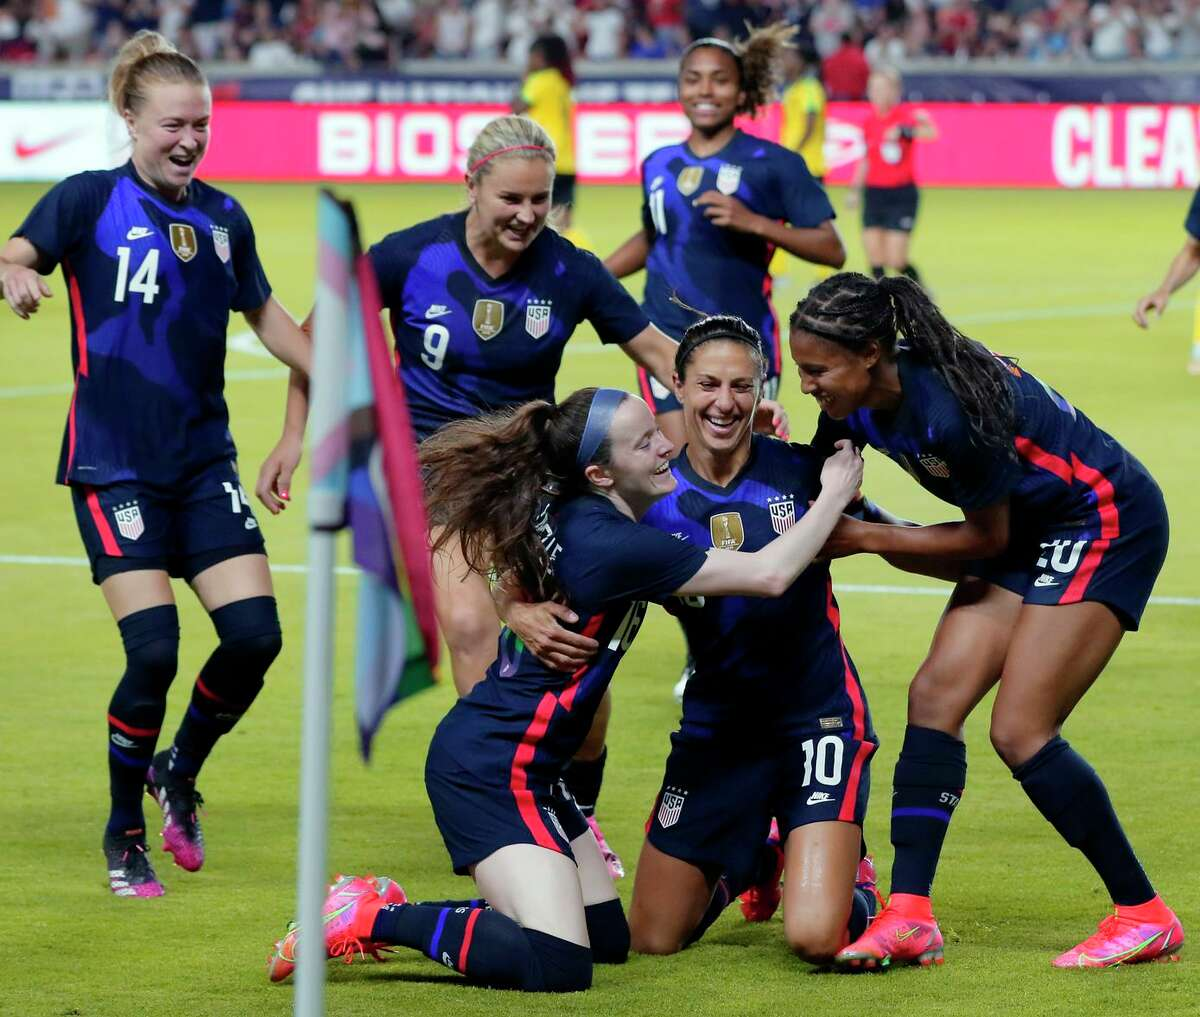 USA forward Carli Lloyd (10) is swarmed by her team mates after scoring a goal against Jamaica during the first half of their 2021 WNT Summer Series match Sunday, June 13, 2021, in Houston. (AP Photo/Michael Wyke)